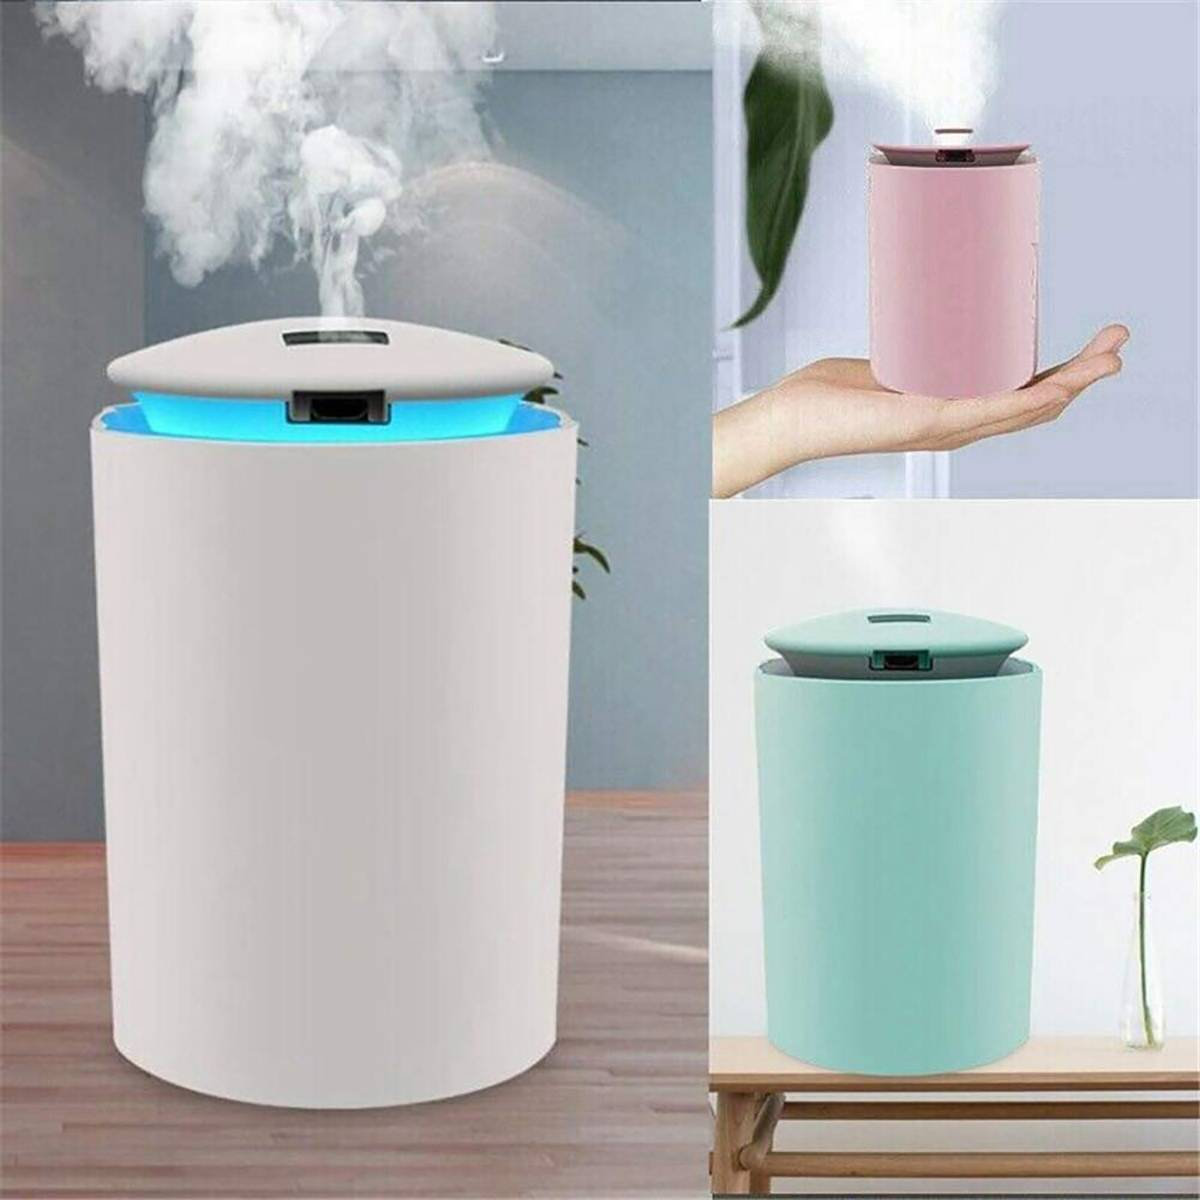 260ML Mini Ultrasonic Air Humidifier Romantic Soft Light USB Essential Oil Diffuser Car Purifier Aroma Anion Mist Maker